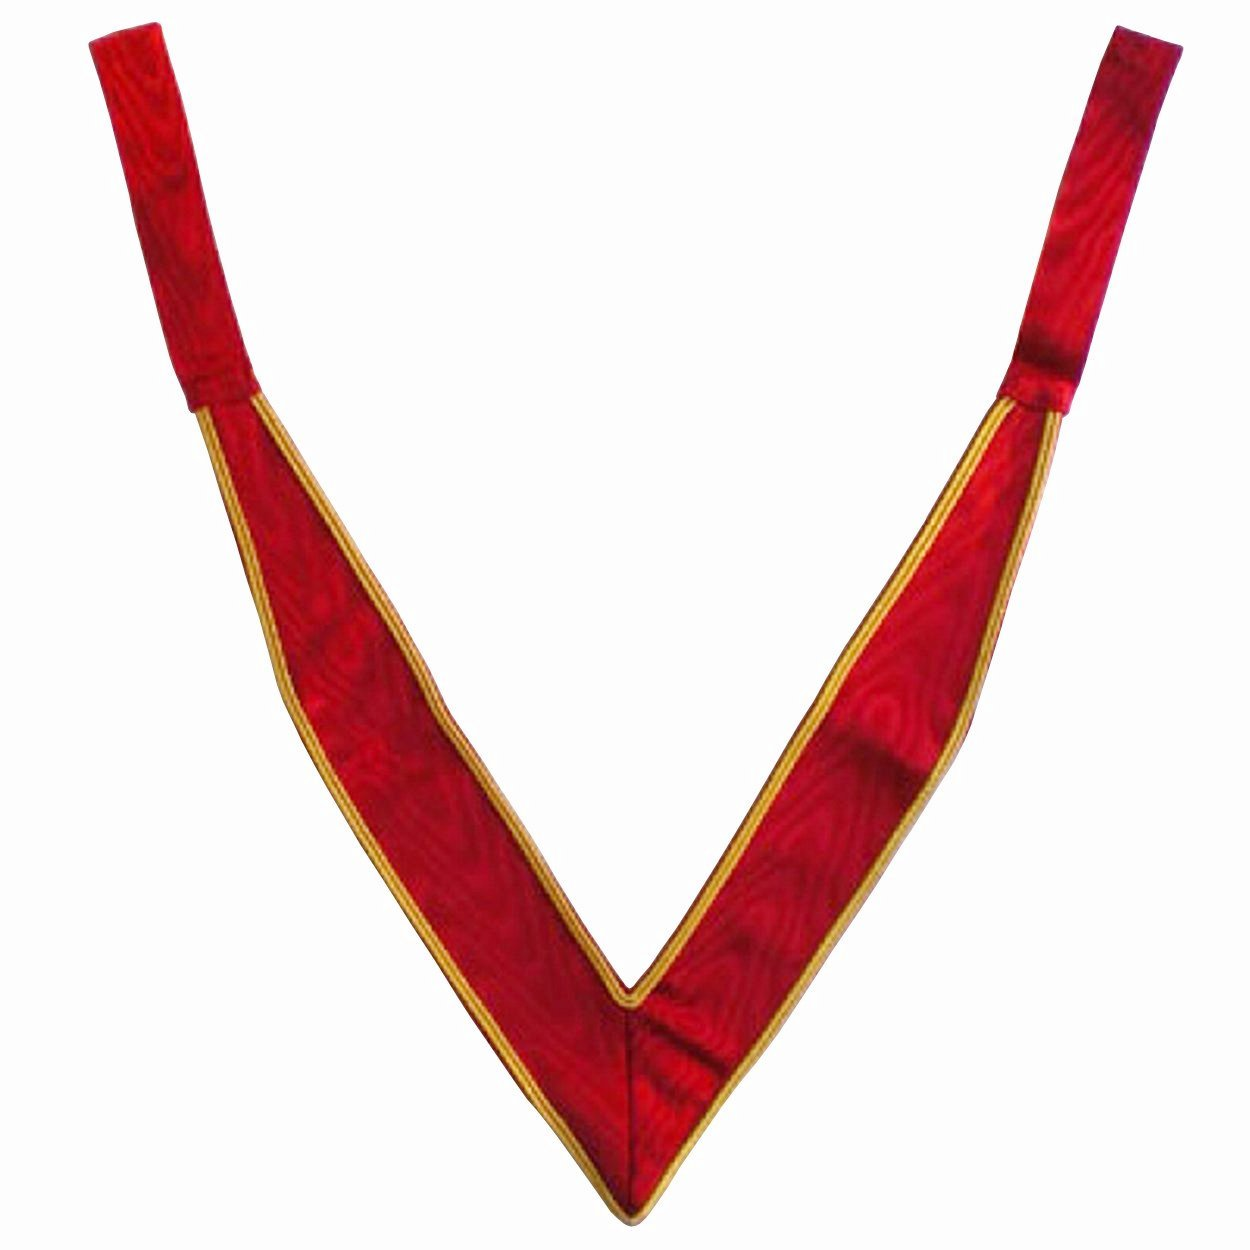 Masonic Rose Croix Collarette - AASR - 32nd degree - Bricks Masons